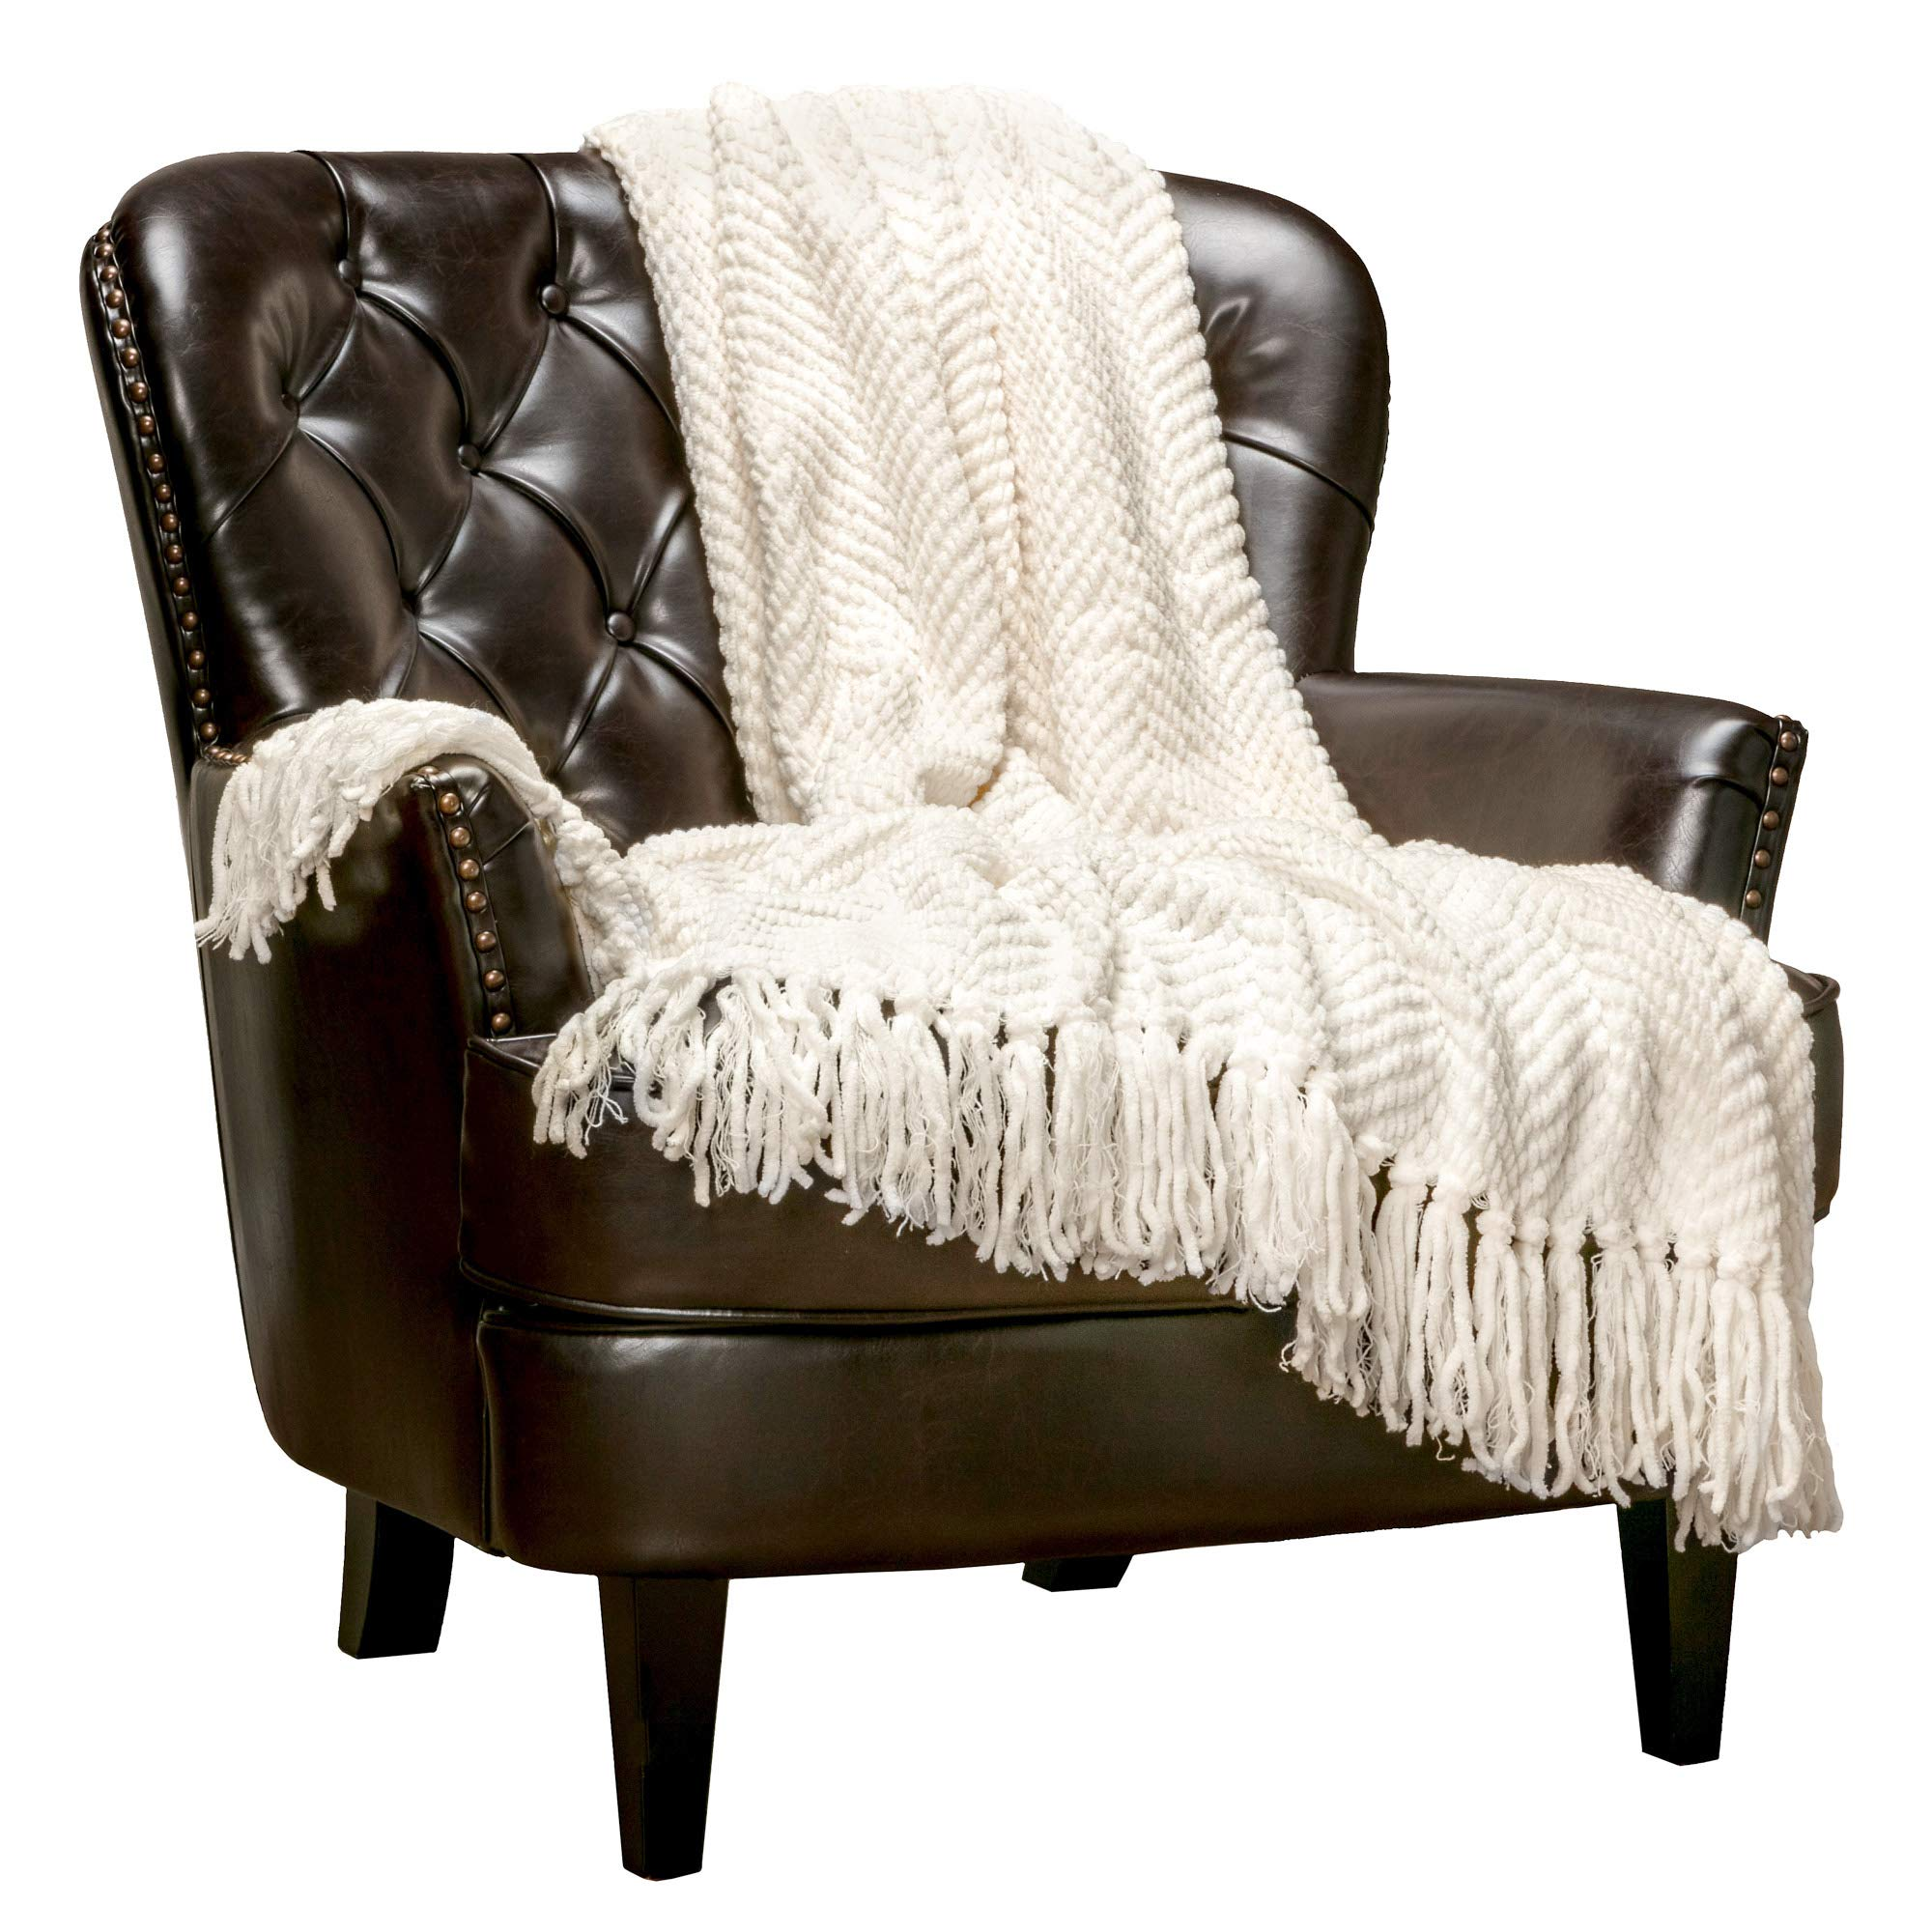 Chanasya Textured Knitted Super Soft Throw Blanket with Tassels Warm Cozy Plush Lightweight Fluffy Woven Blanket for Bed Sofa Chair Couch Cover Living Bed Room Off White Throw Blanket (50x65)- Cream by Chanasya